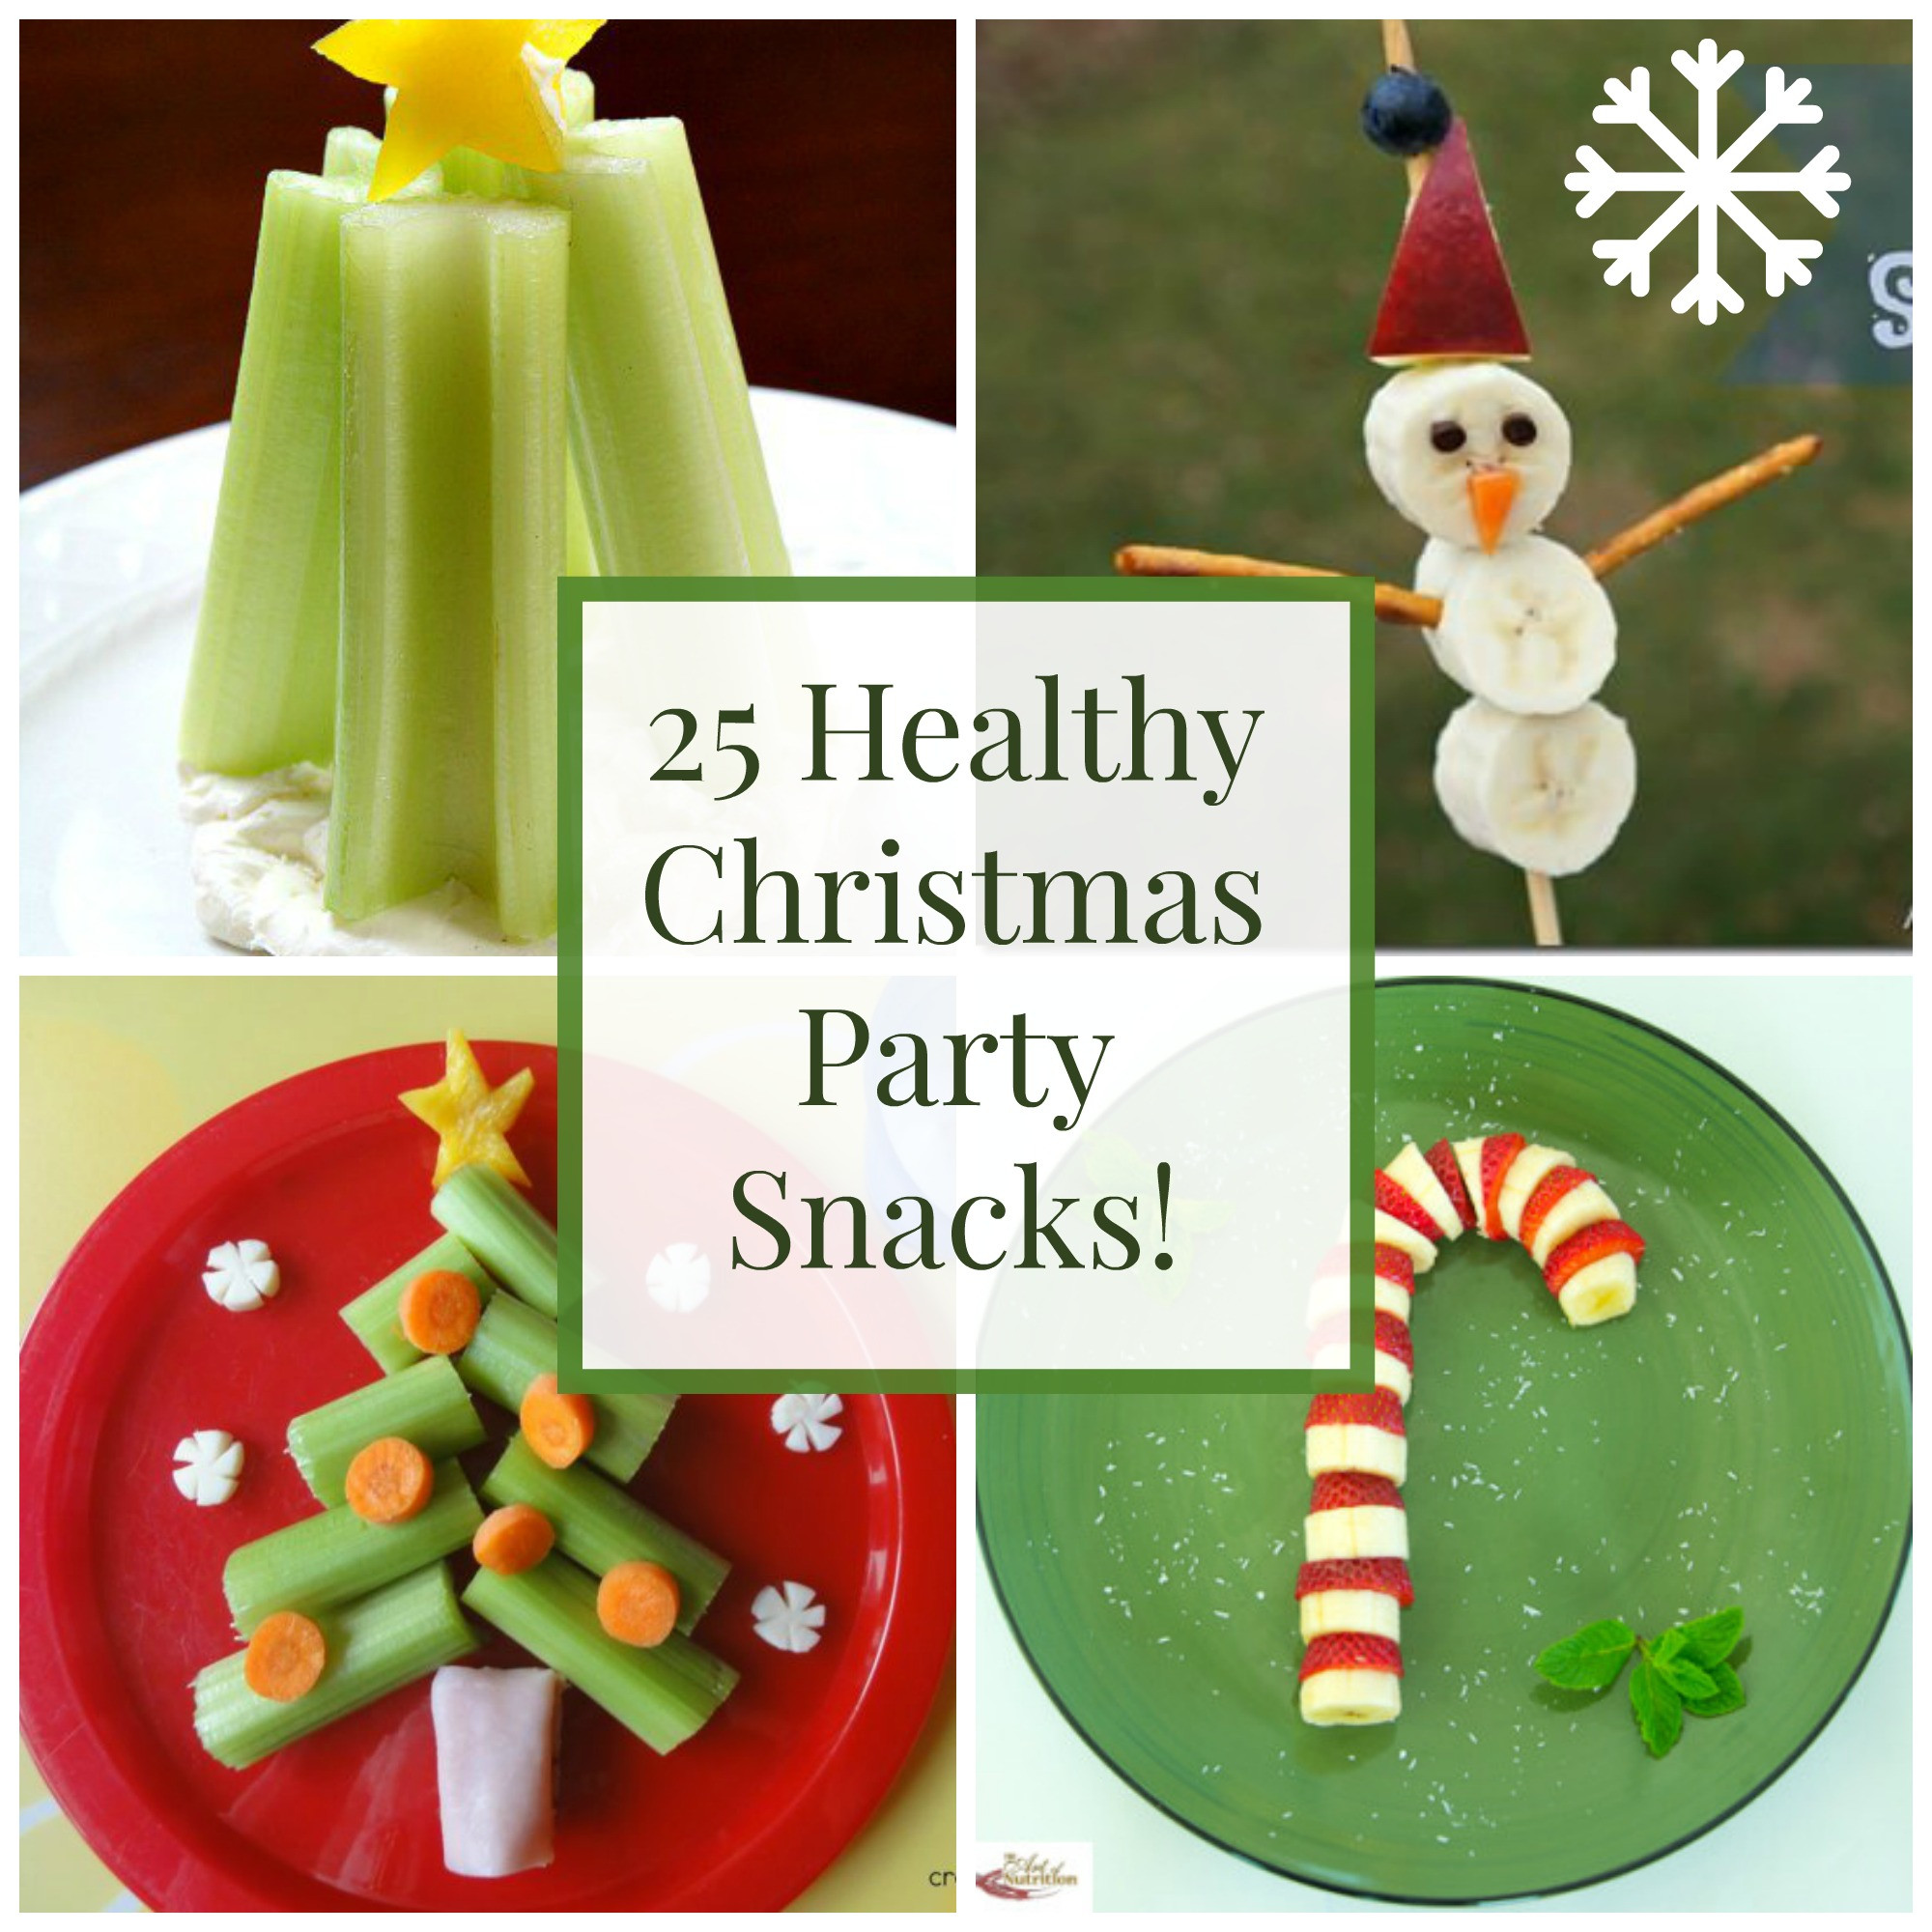 Healthy Christmas Snacks For School Parties  25 Healthy Christmas Snacks and Party Foods